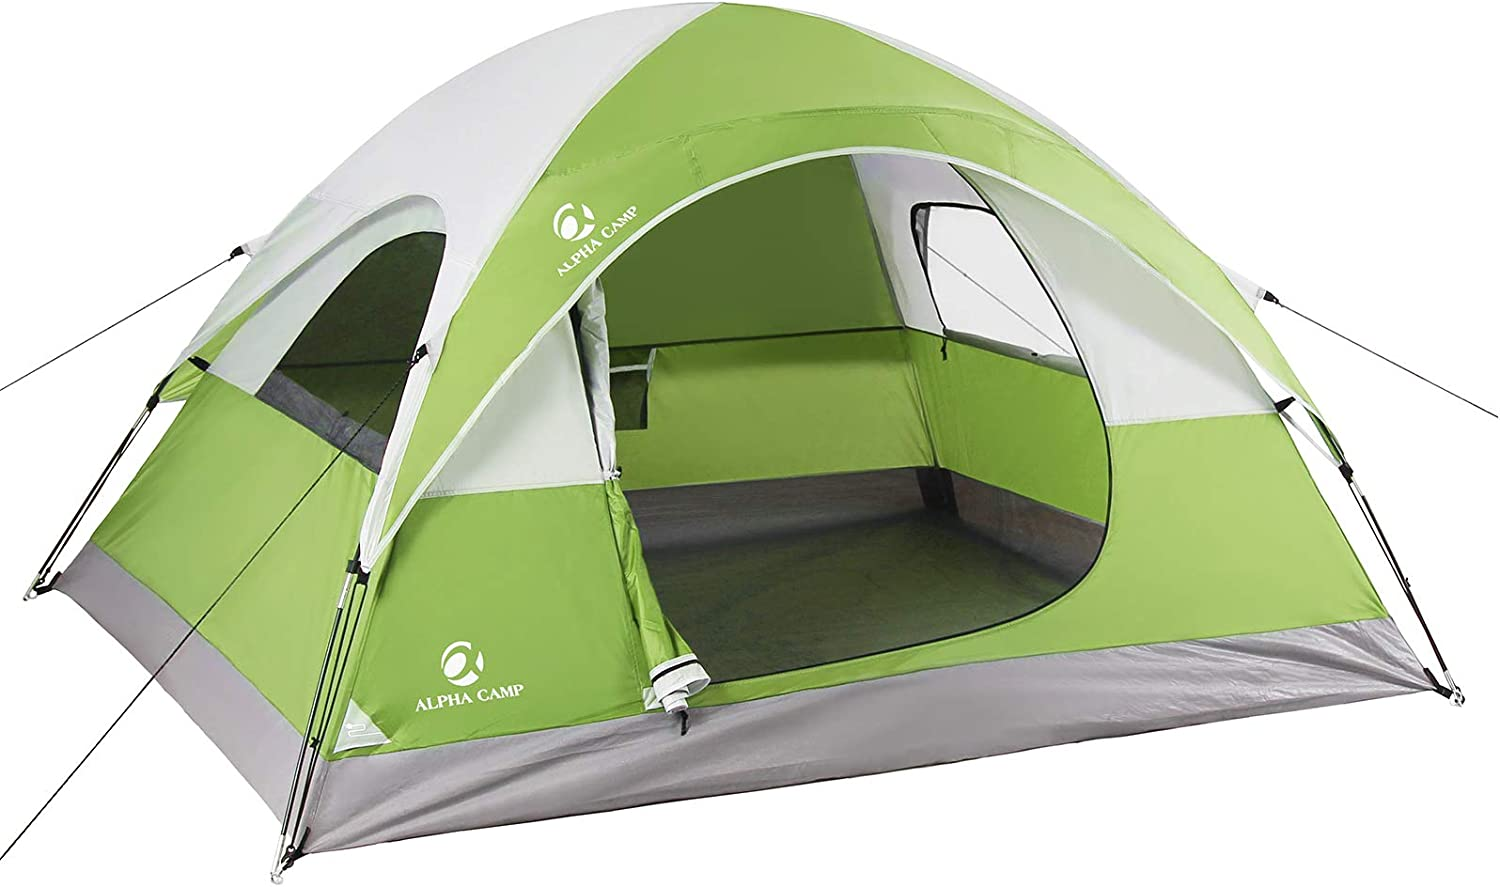 ALPHA CAMP 2 3 Person Camping Carry 2021new shipping free with Lightwei Dome Bag Tent OFFer